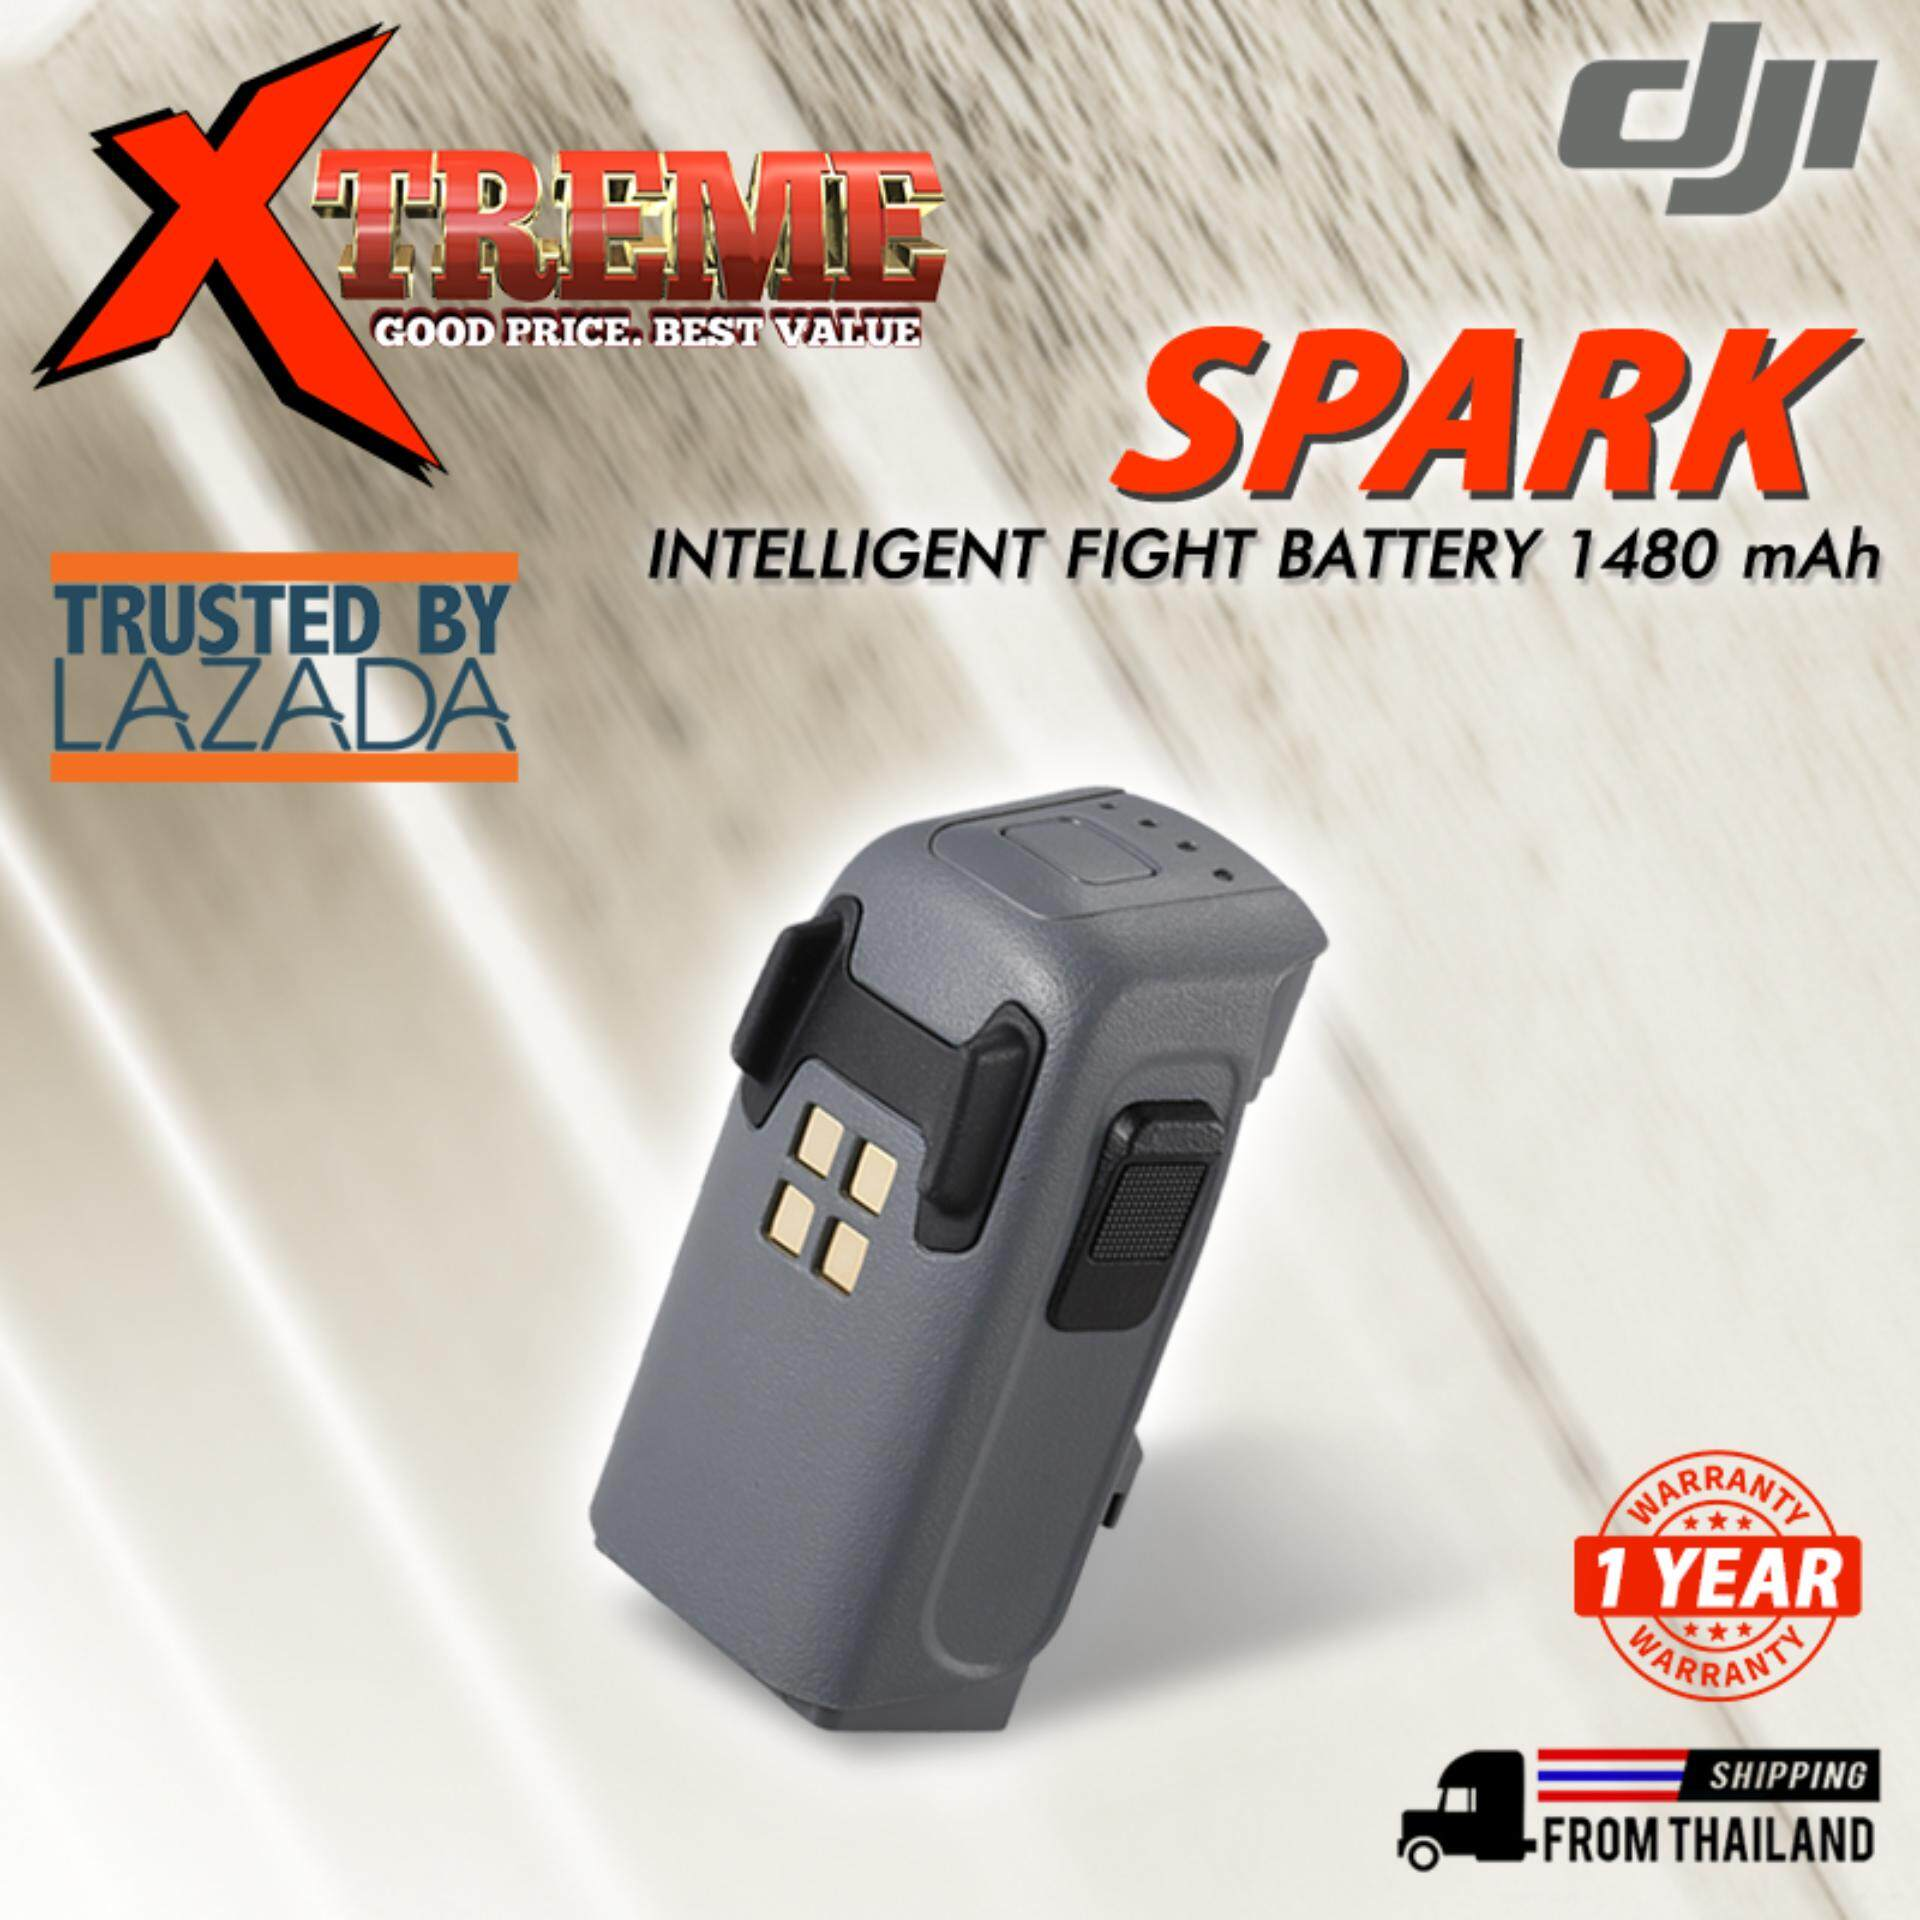 Original Battery DJI Spark Intelligent Flight Battery 1480 mAh